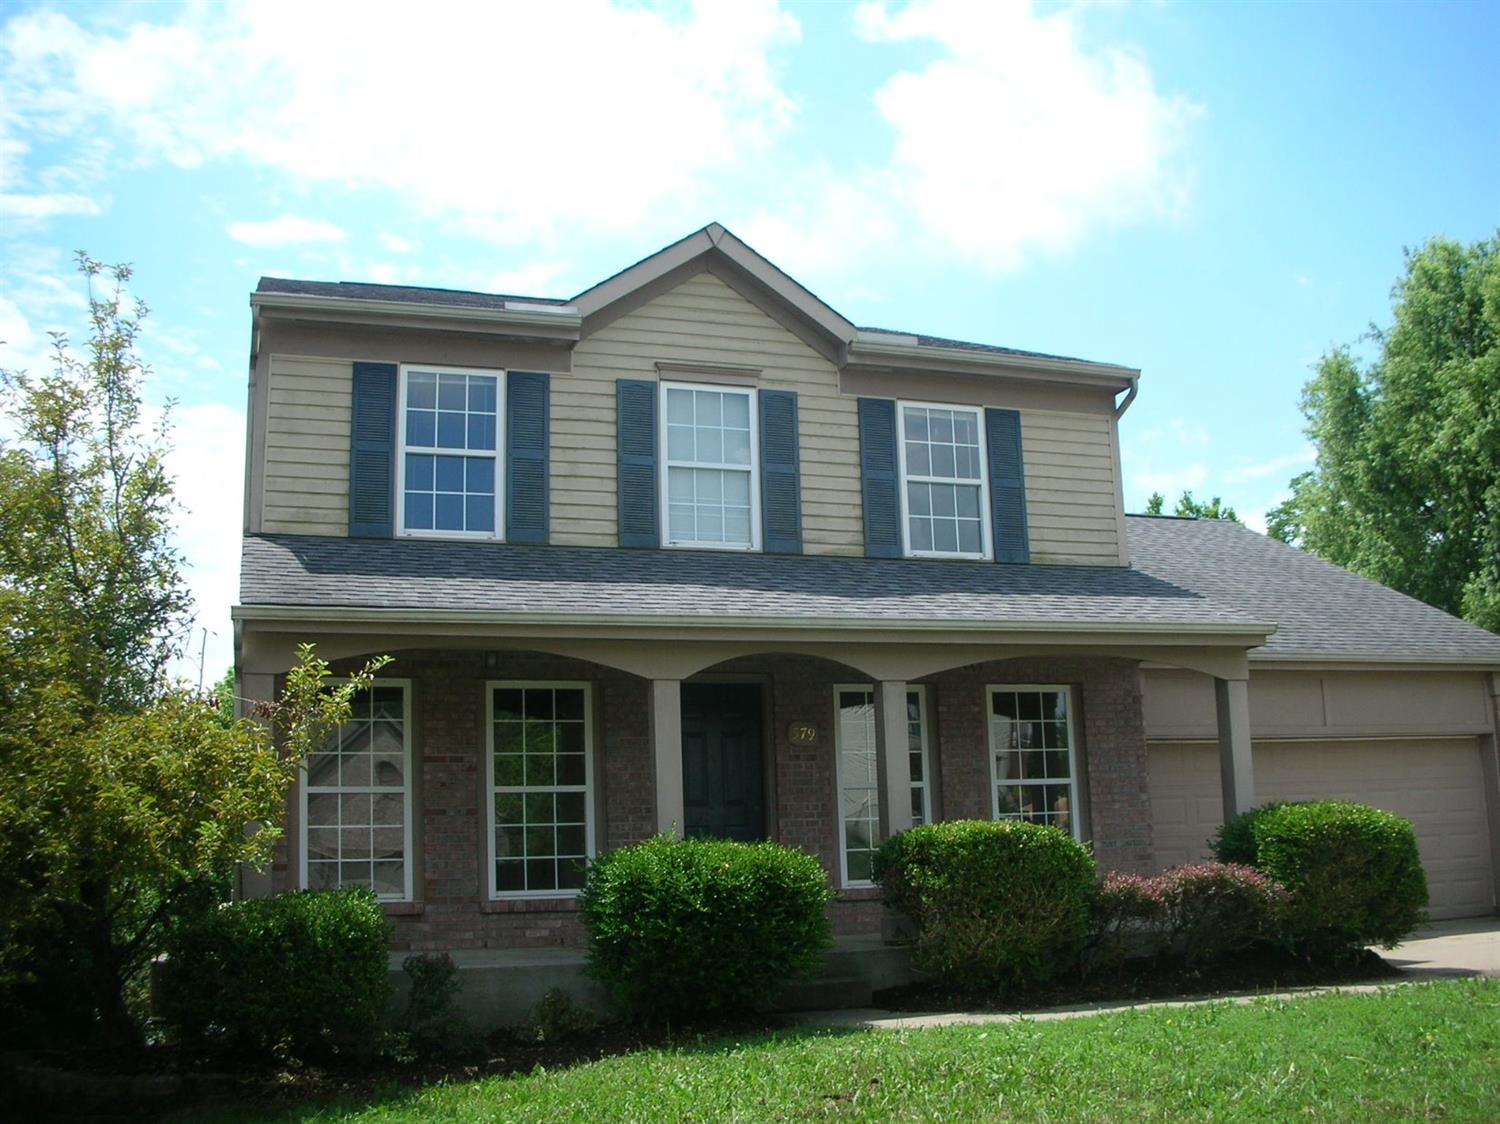 579 Laurelwood Dr Cleves, OH